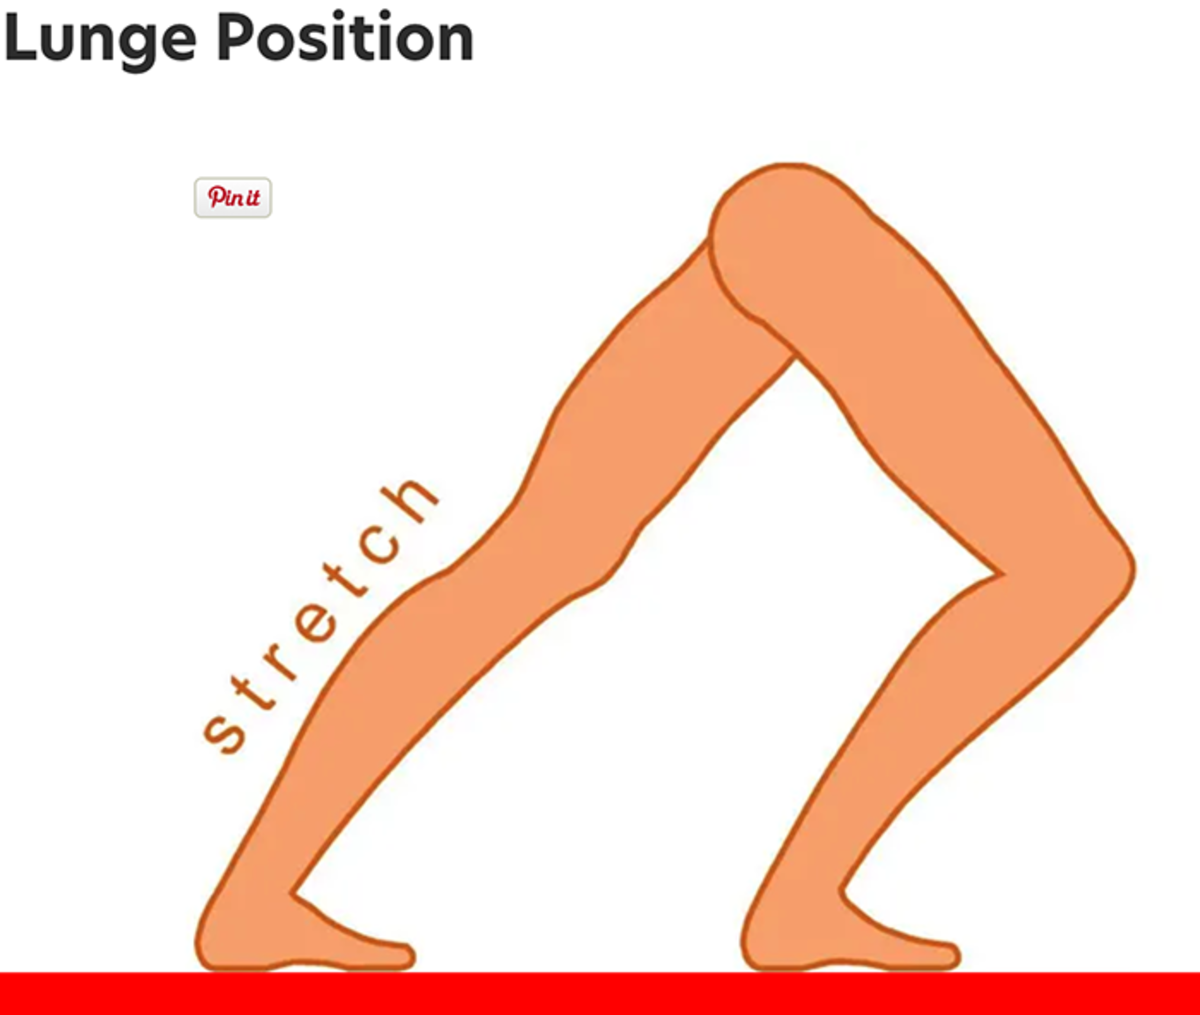 A lunge stretches the calf muscles, Achilles tendons, and hamstrings.